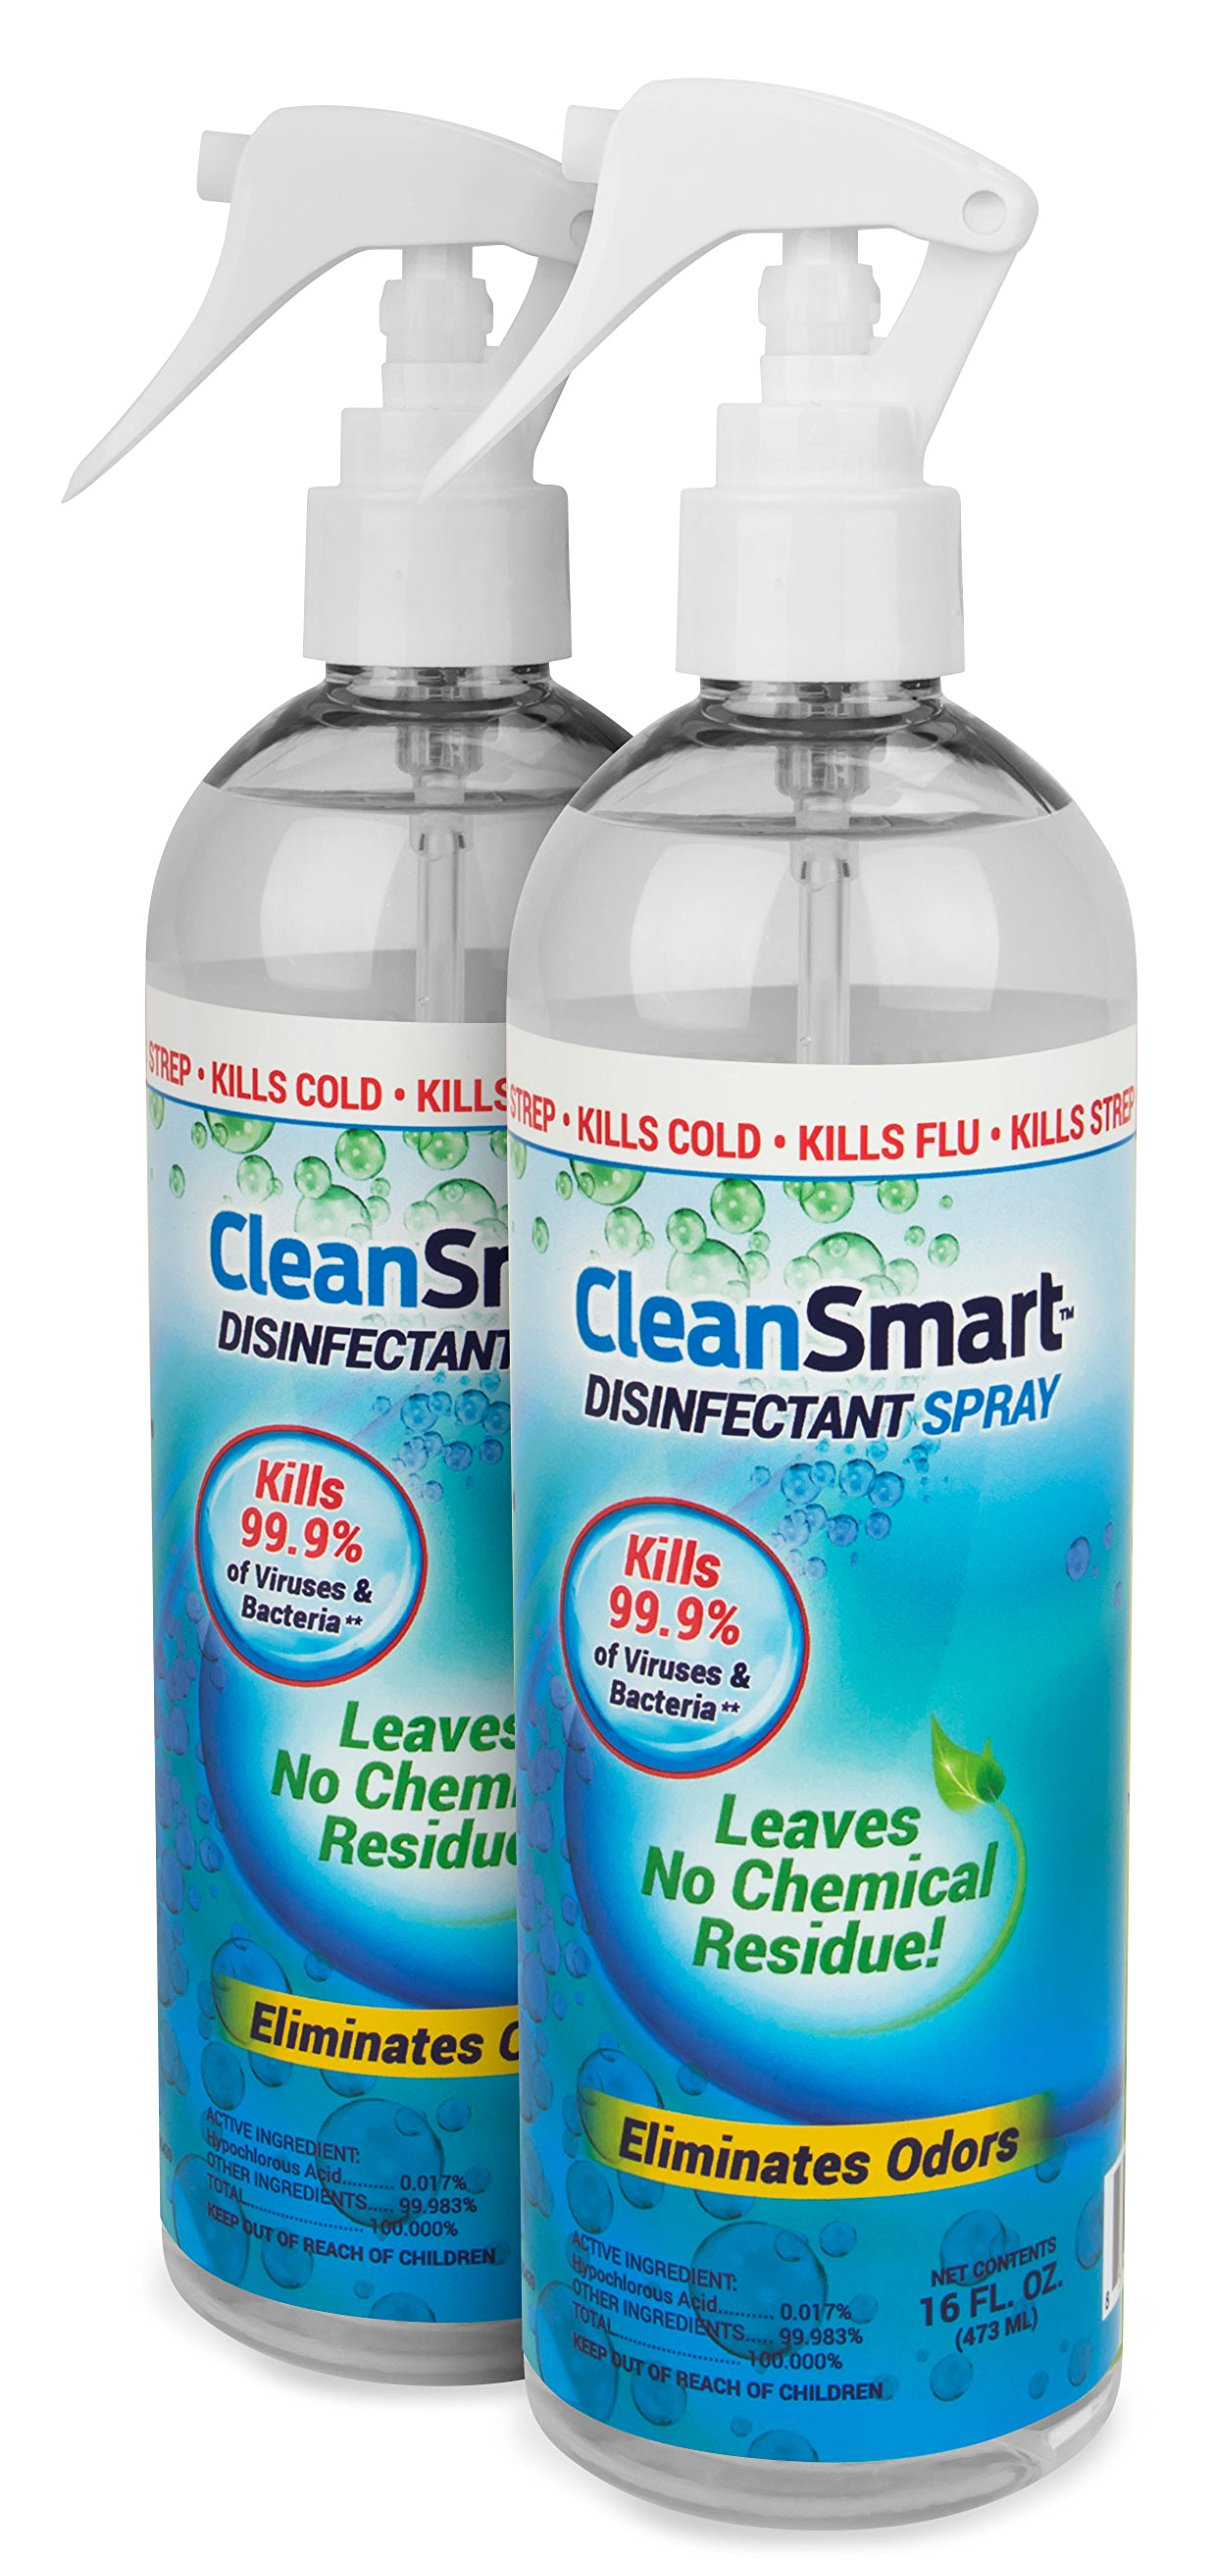 CleanSmart Disinfectant Spray Mist Kills 99.9% of Viruses, Bacteria, Germs, Mold, Fungus. Leaves No Chemical Residue! 16oz. 2Pk. Great to Clean and Sanitize CPAP Masks, Parts & Air Dry. by CleanSmart